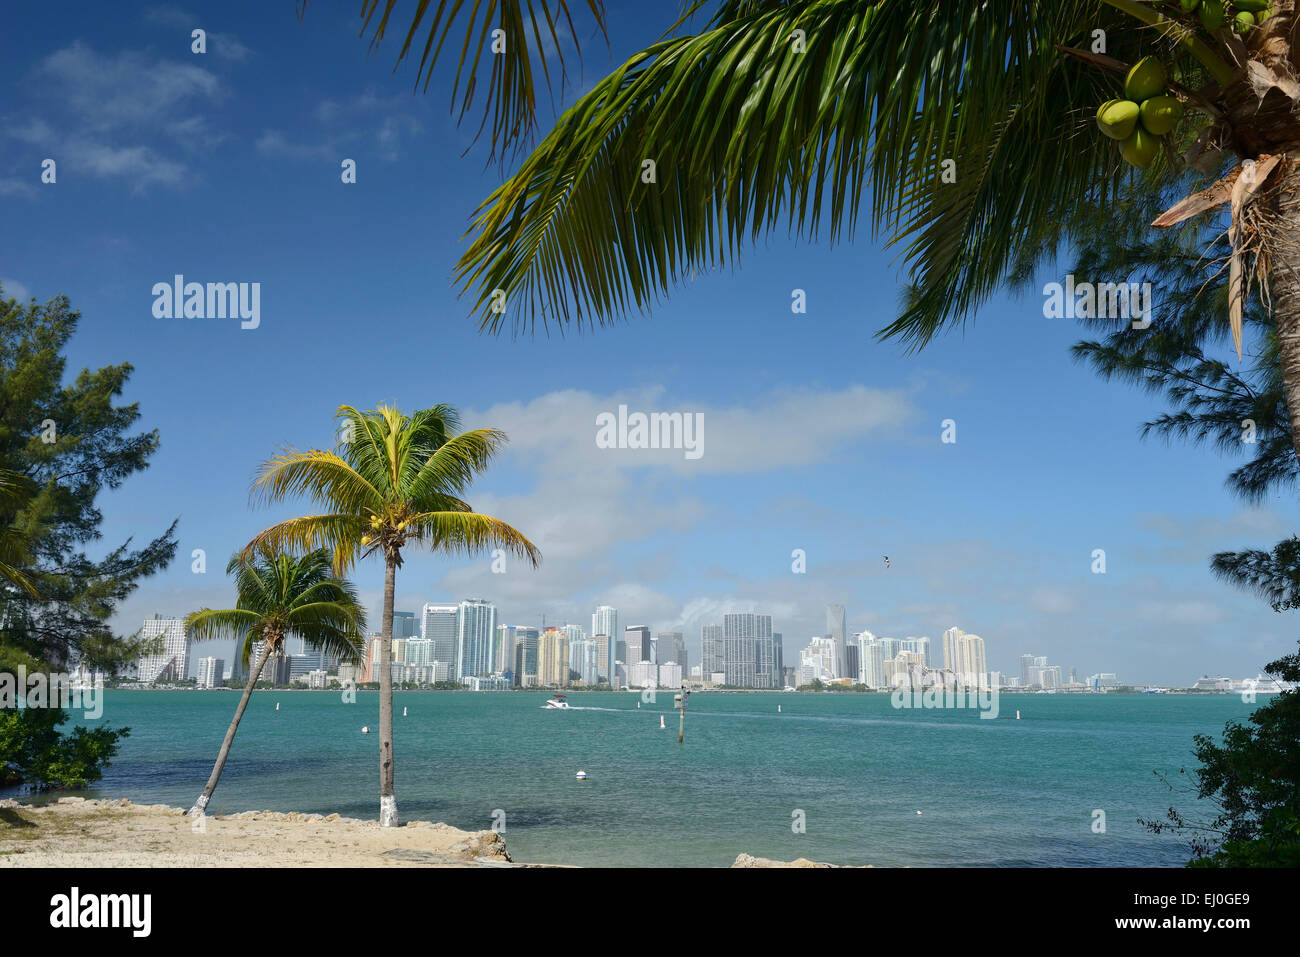 USA, Florida, Dade County, Miami, seen from Key Biscayne - Stock Image